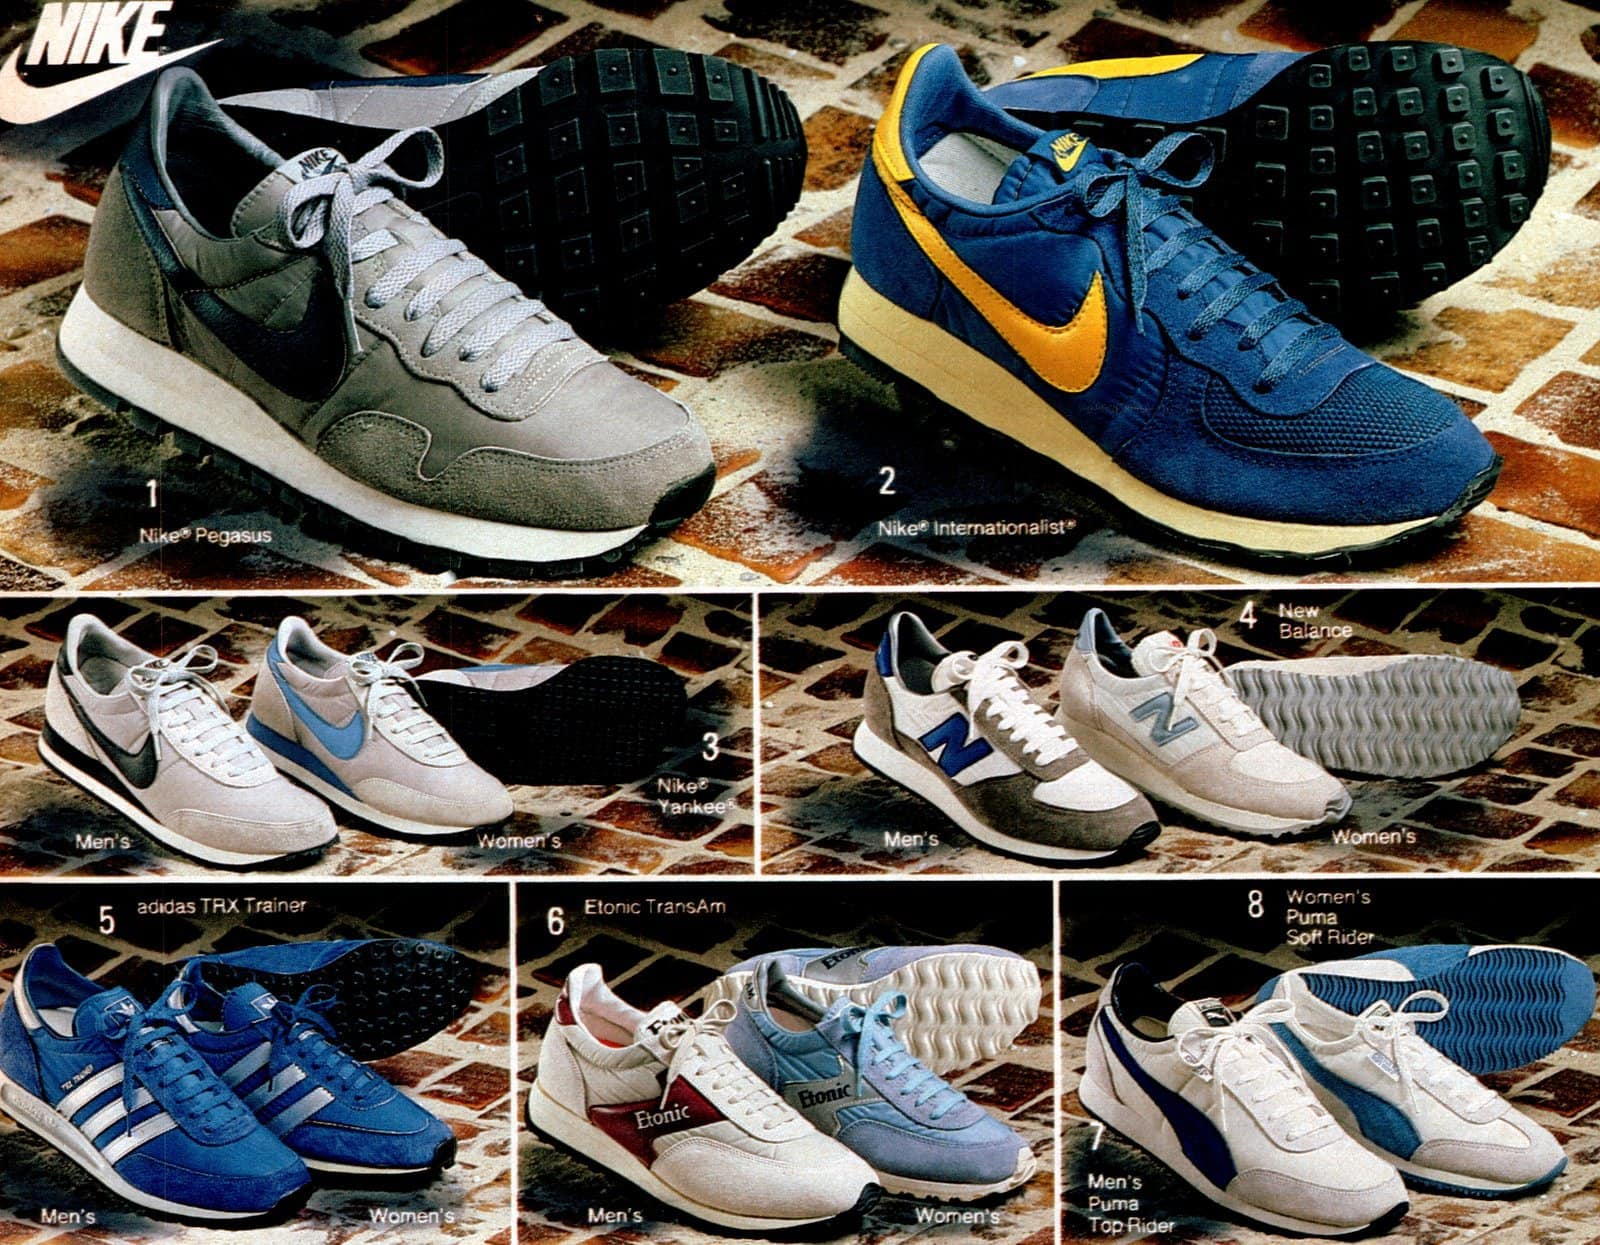 Retro and vintage Nike shoe styles from 1983